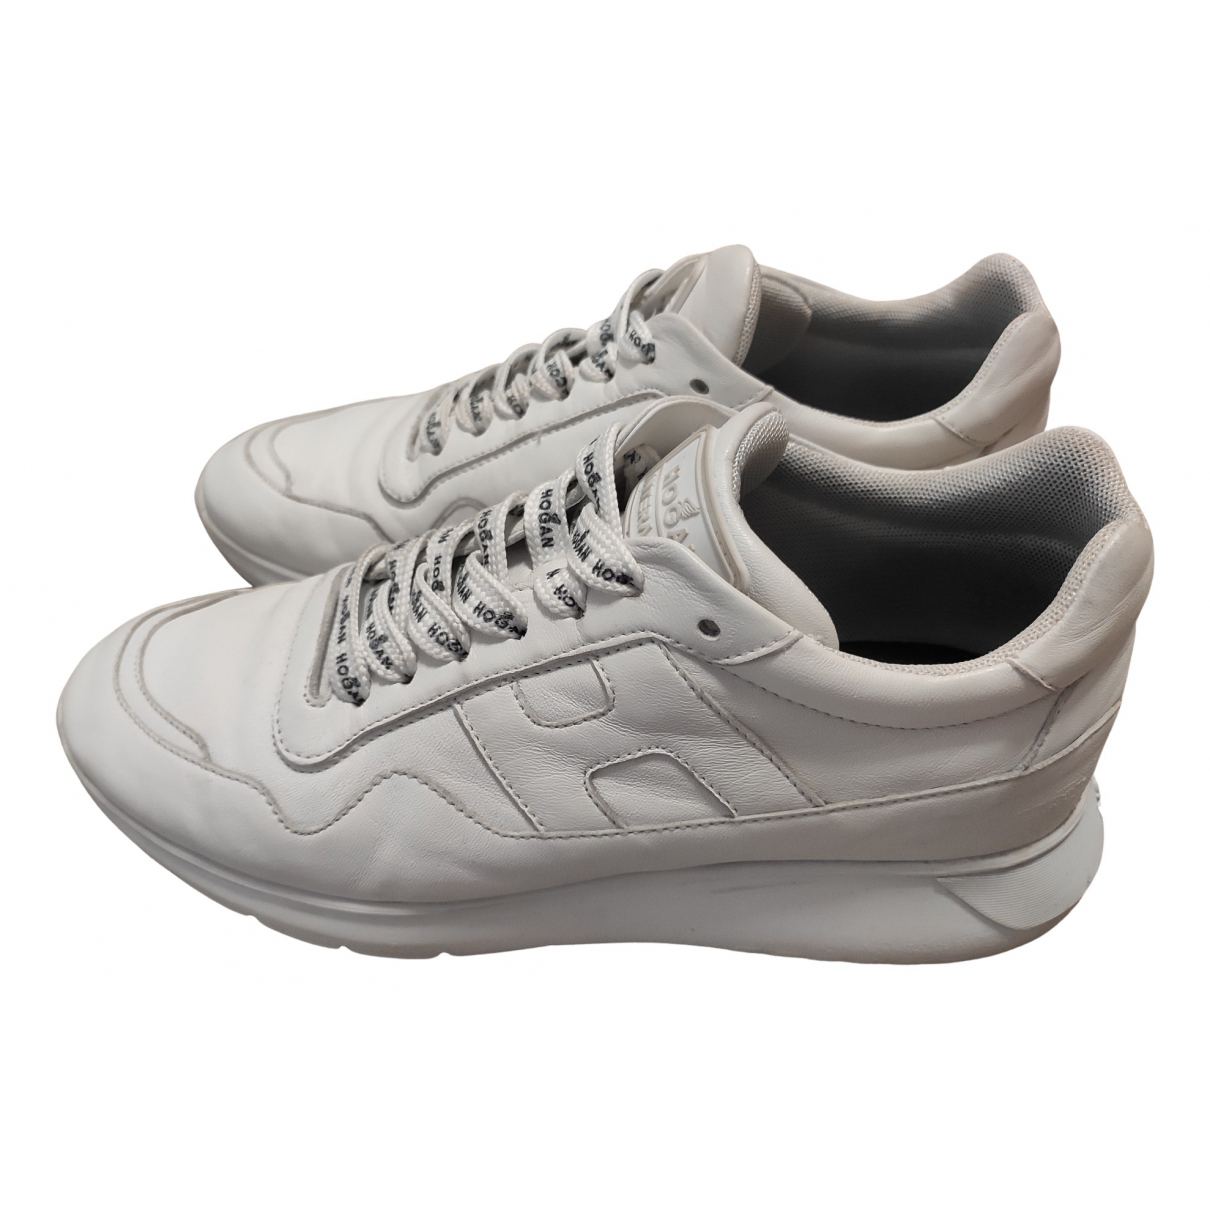 Hogan N White Leather Trainers for Men 6 UK